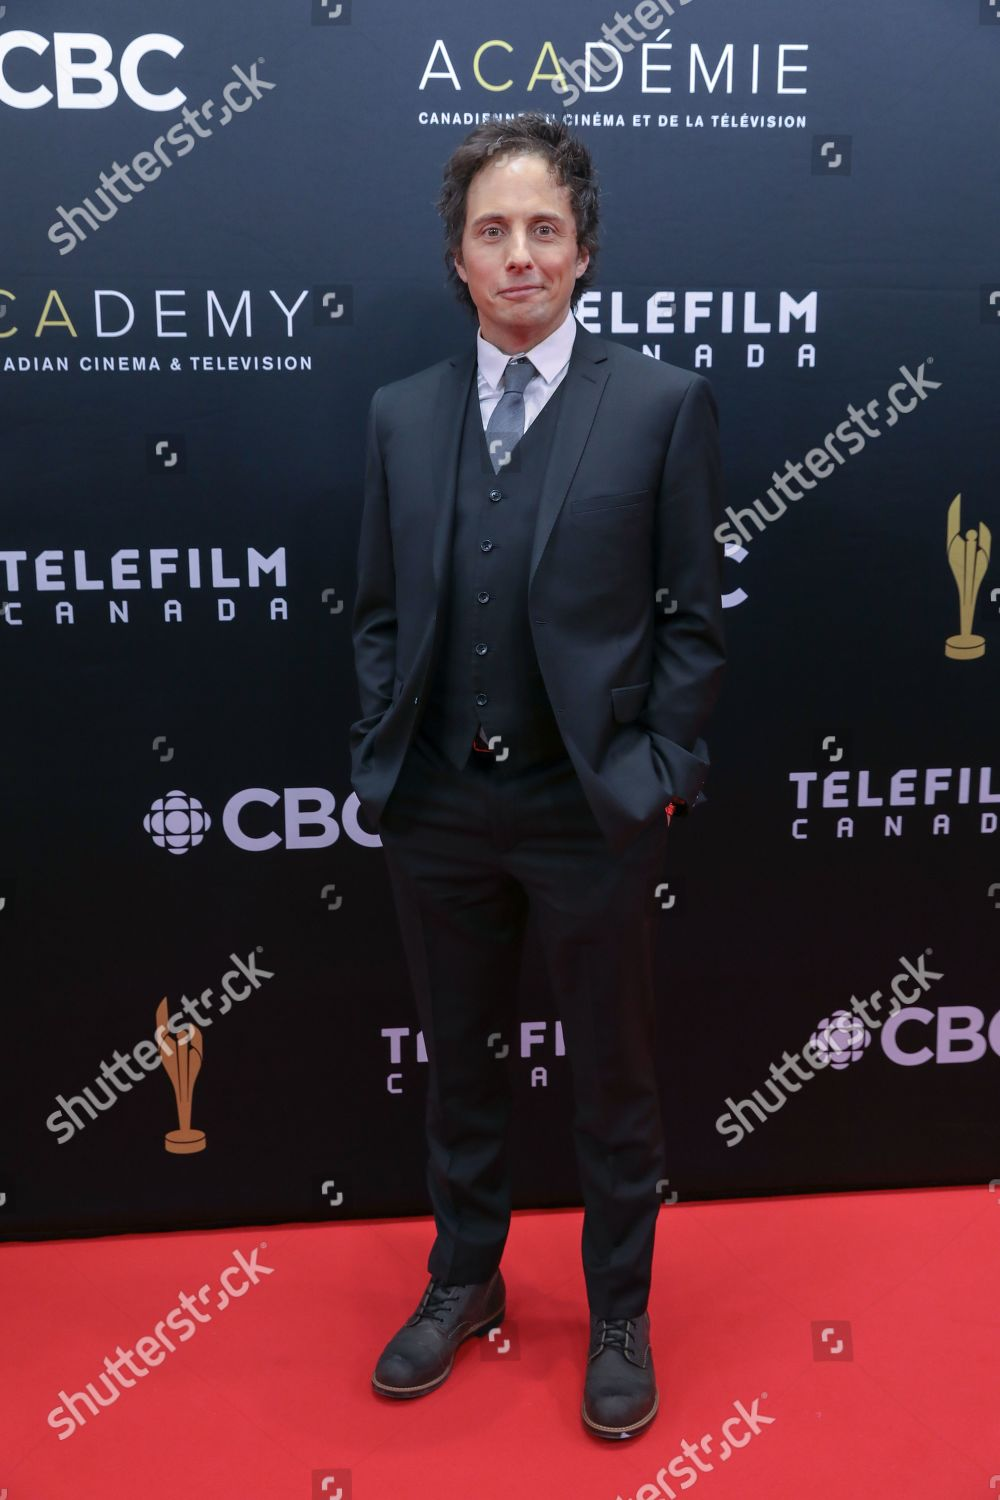 Jonny Harris Editorial Stock Photo Stock Image Shutterstock Boxing taught me my values & made my fears disappear. https www shutterstock com editorial image editorial 2019 canadian screen awards toronto canada 31 mar 2019 10184162bd